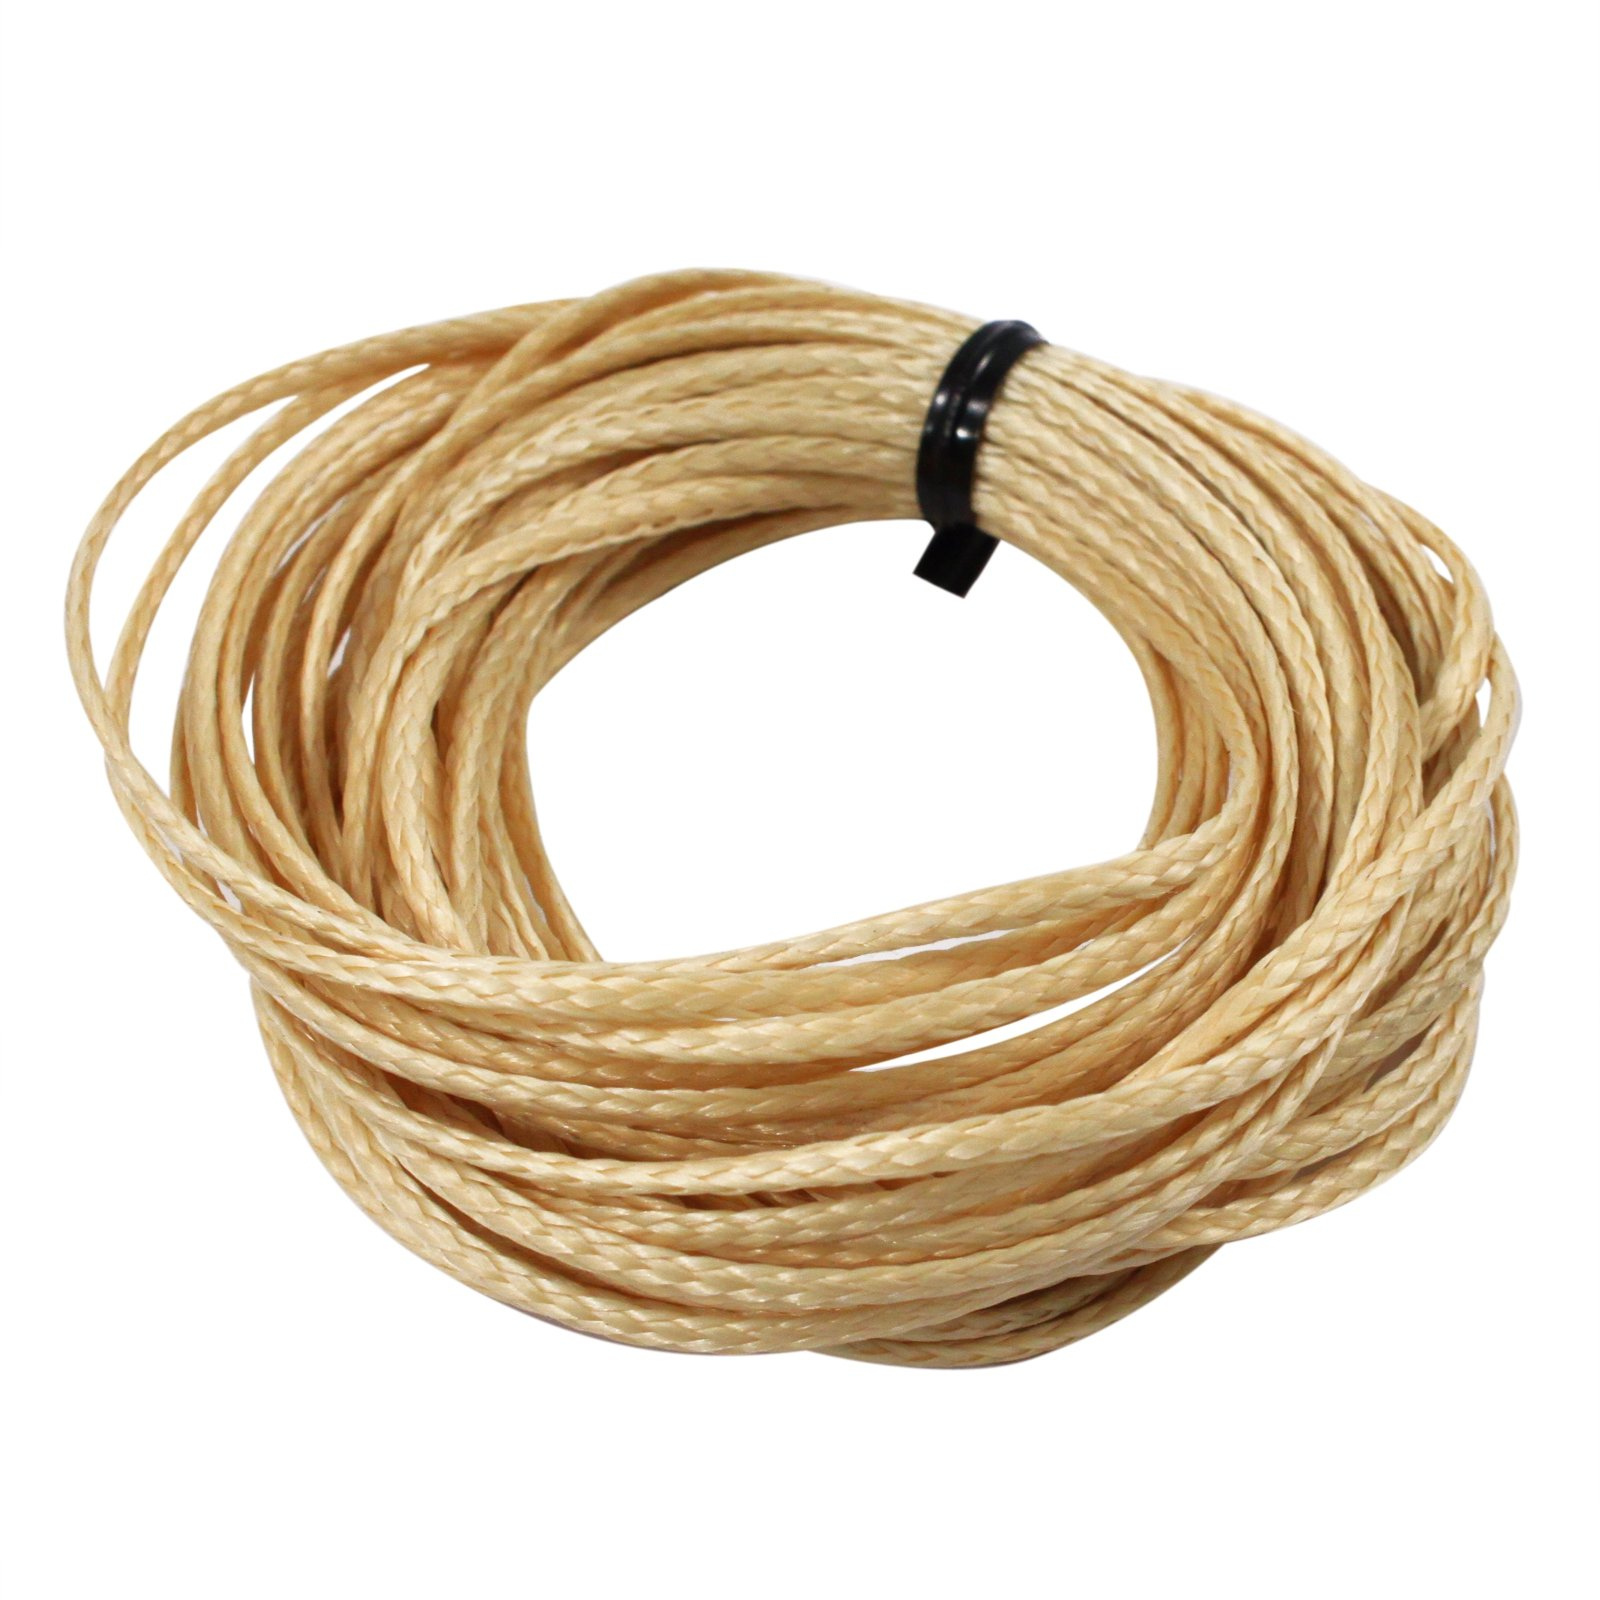 ASR Outdoor Technora Composite Survival Rope 1200lb Breaking Strength 100ft Tan